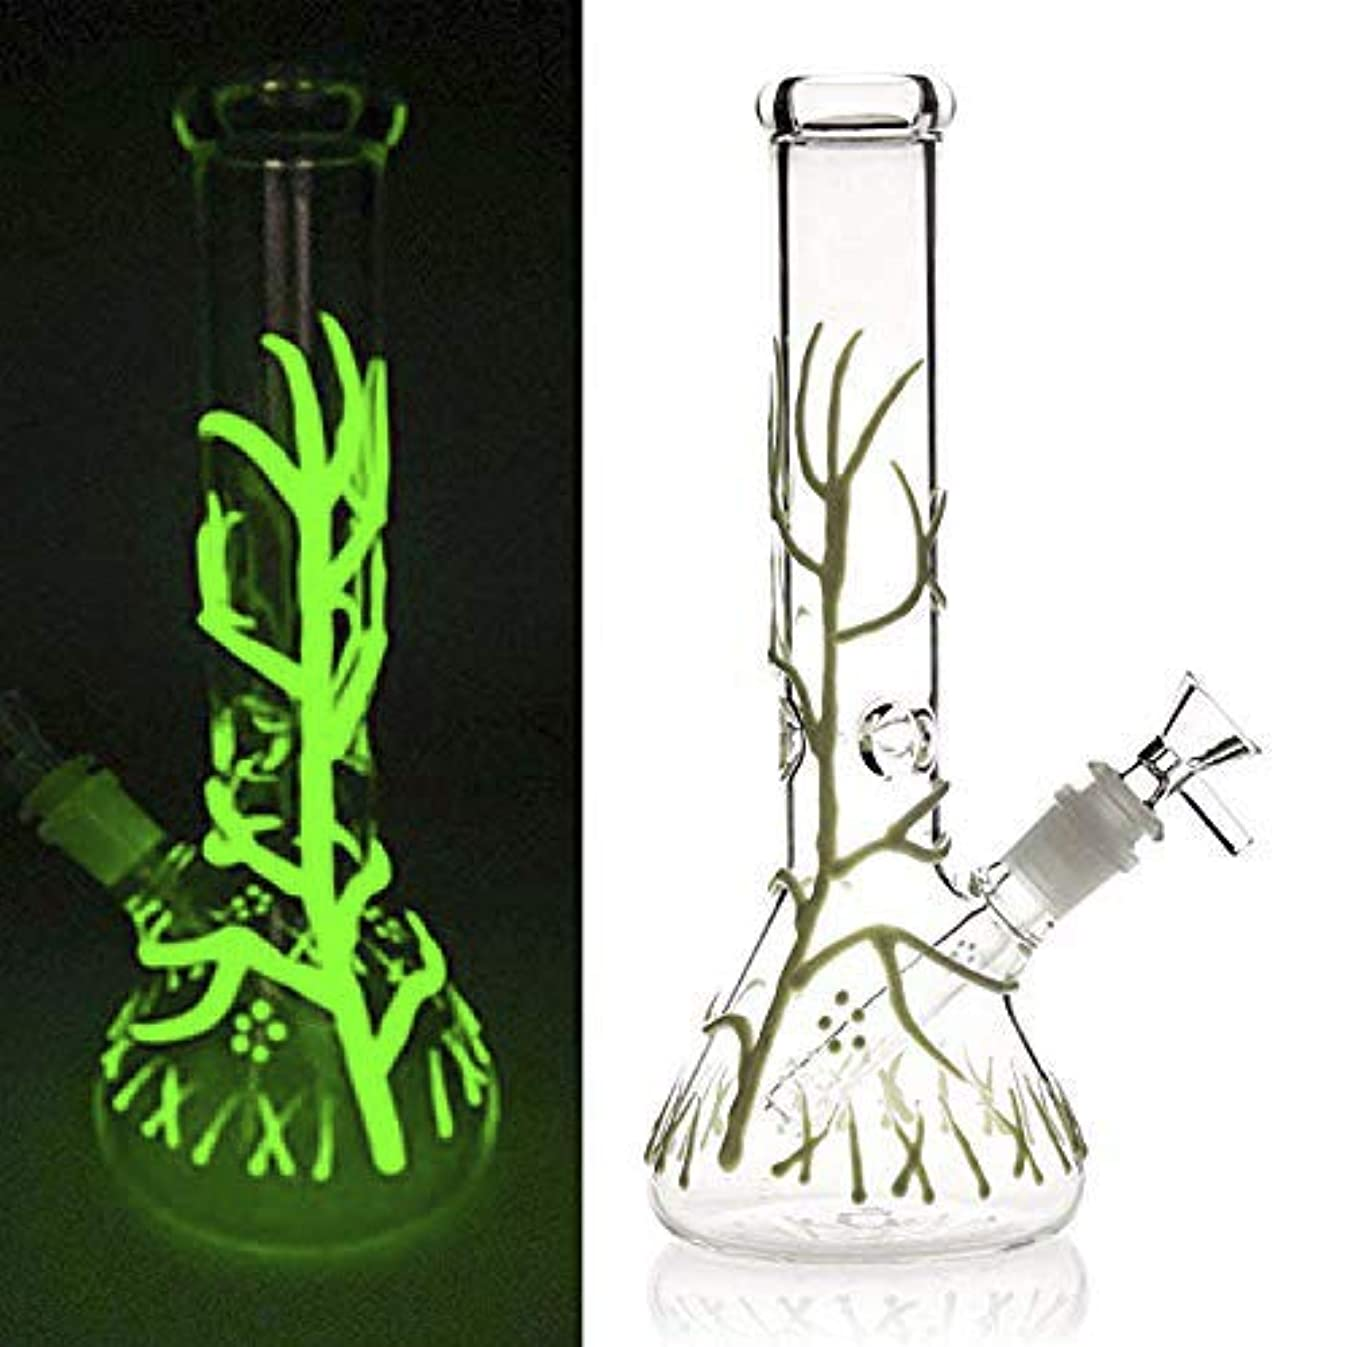 10.6 Inch Glass Smokīng Pīpe Crafts Tree Vines Glow in The Dark (Milky)